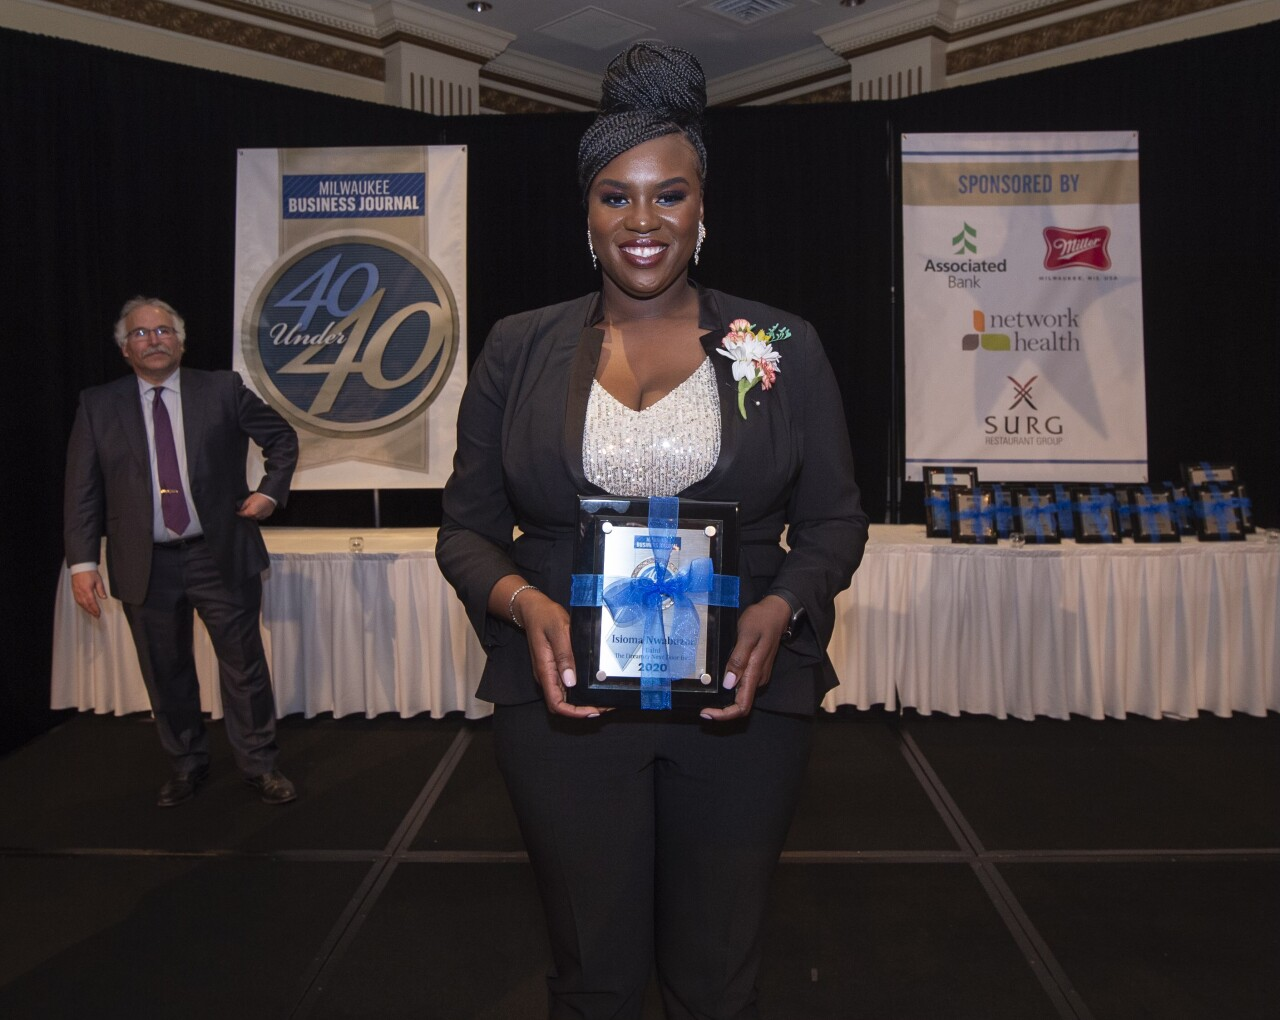 Attorney Isioma Nwabuzor, recognized as one of Milwaukee Business Journal's 40 under 40